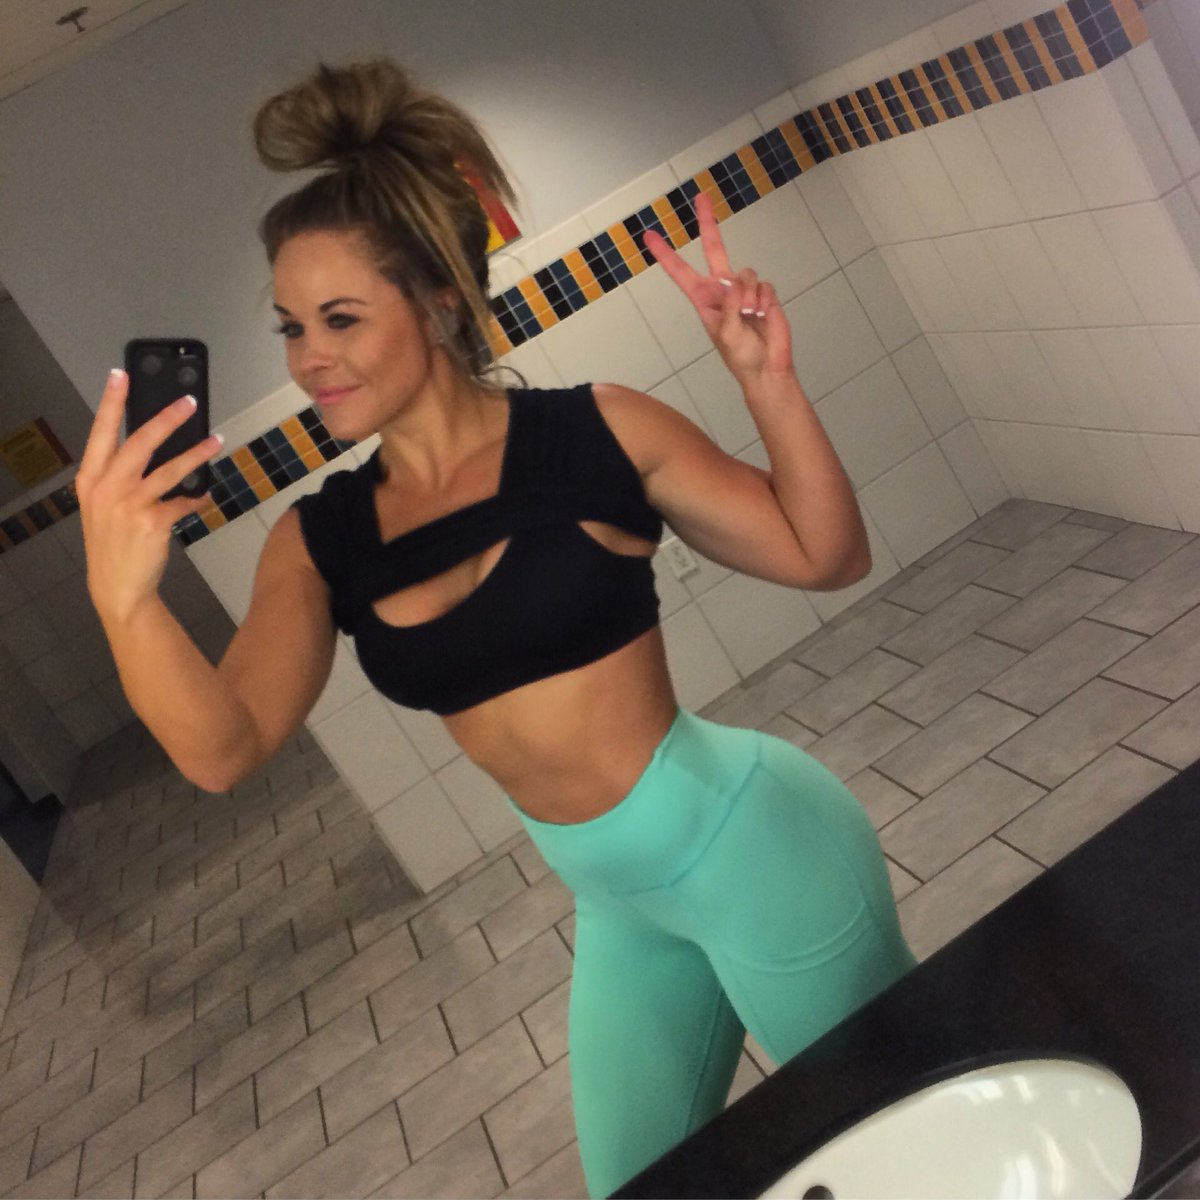 Sami B On Twitter Ptulaactive Leggings On Point Mint Coming Soon With 1st Official Launch Of Ptula Sorry for the wrinkles in the. sami b on twitter ptulaactive